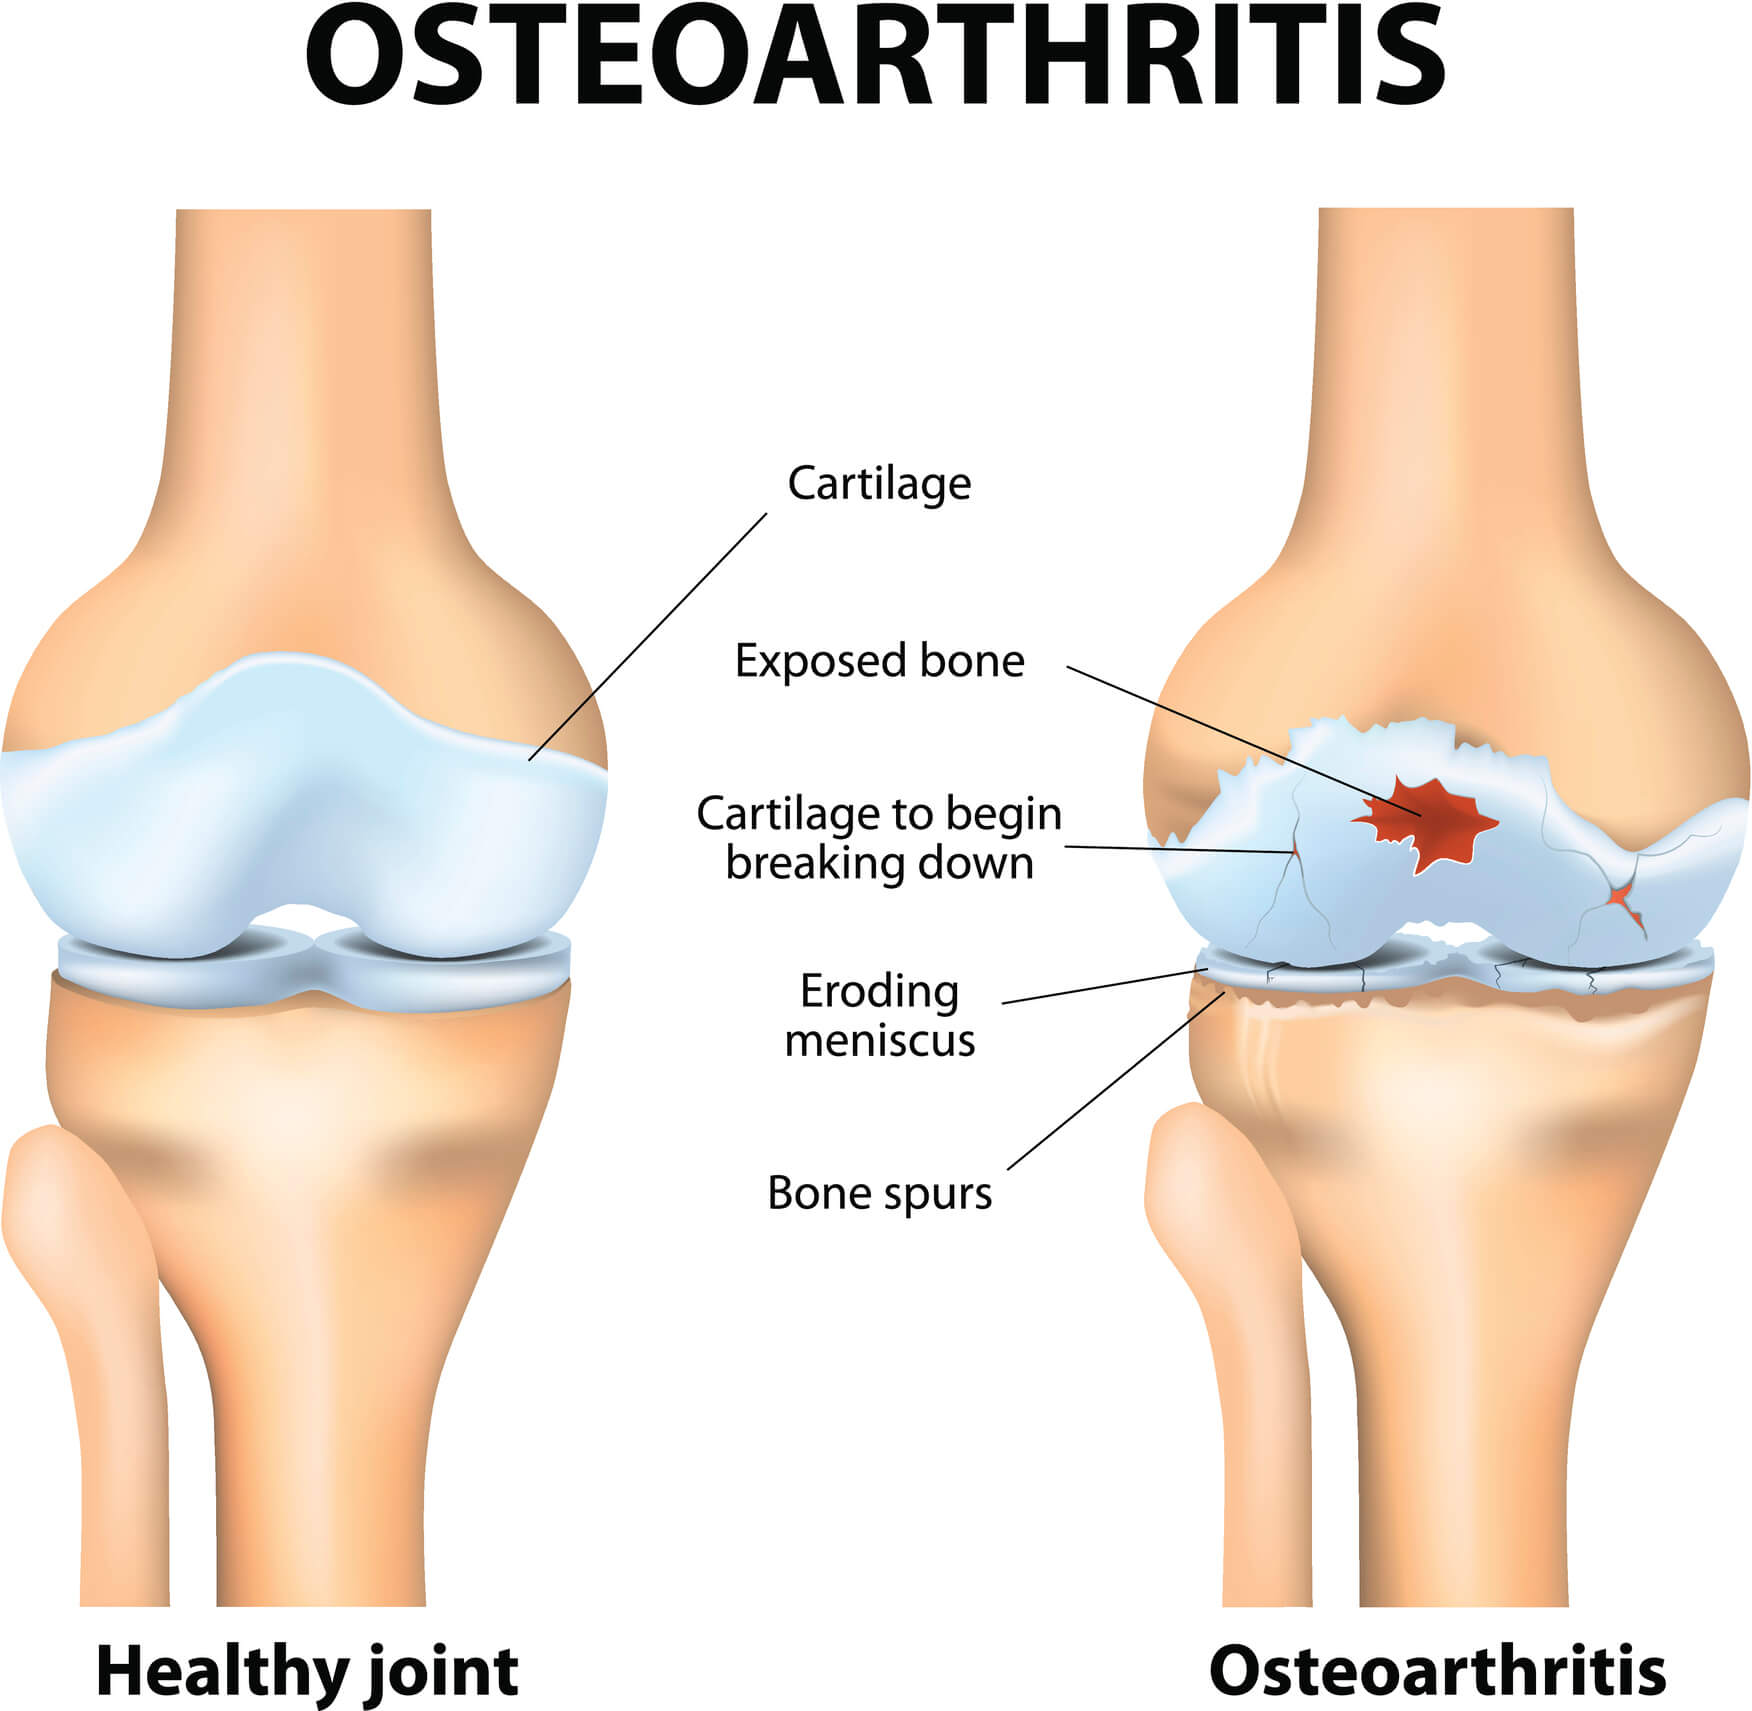 Images of 2 knees - a healthy one and another affected by knee osteoarthritis.